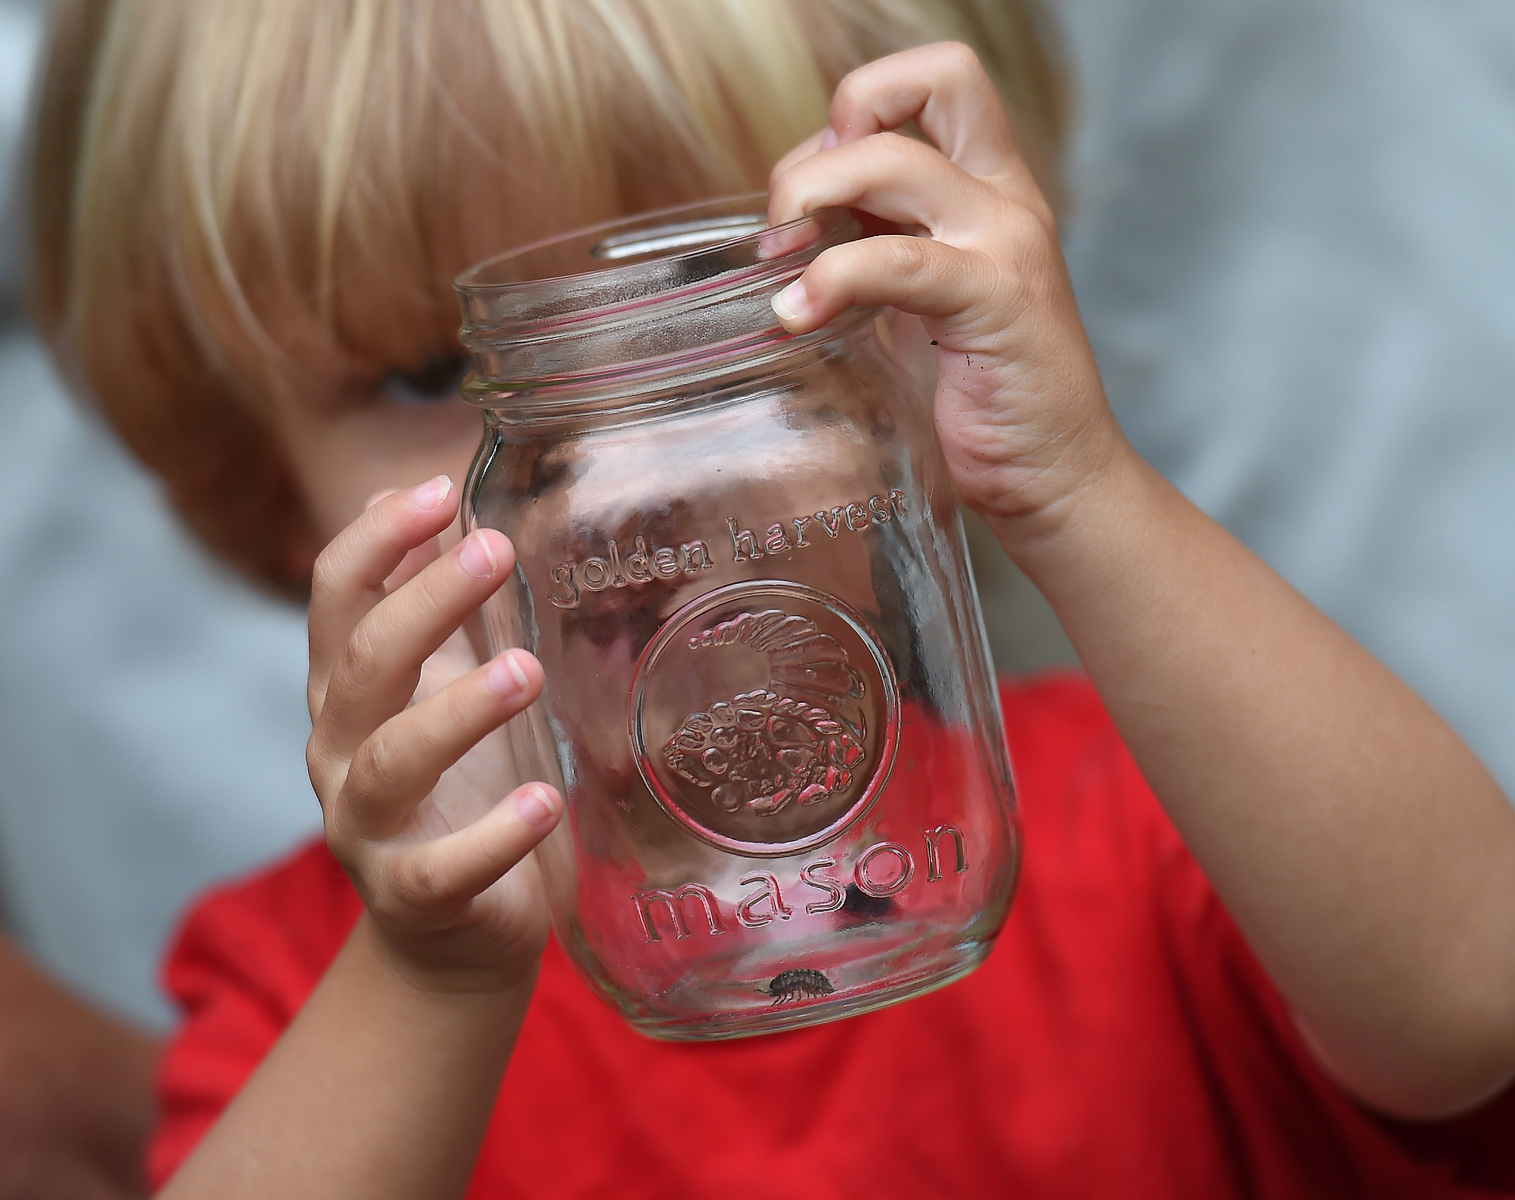 Clifton Decker, 2, examines rolly pollies collected while playing near the front porch of his grandparents home in Lost Rabbit.